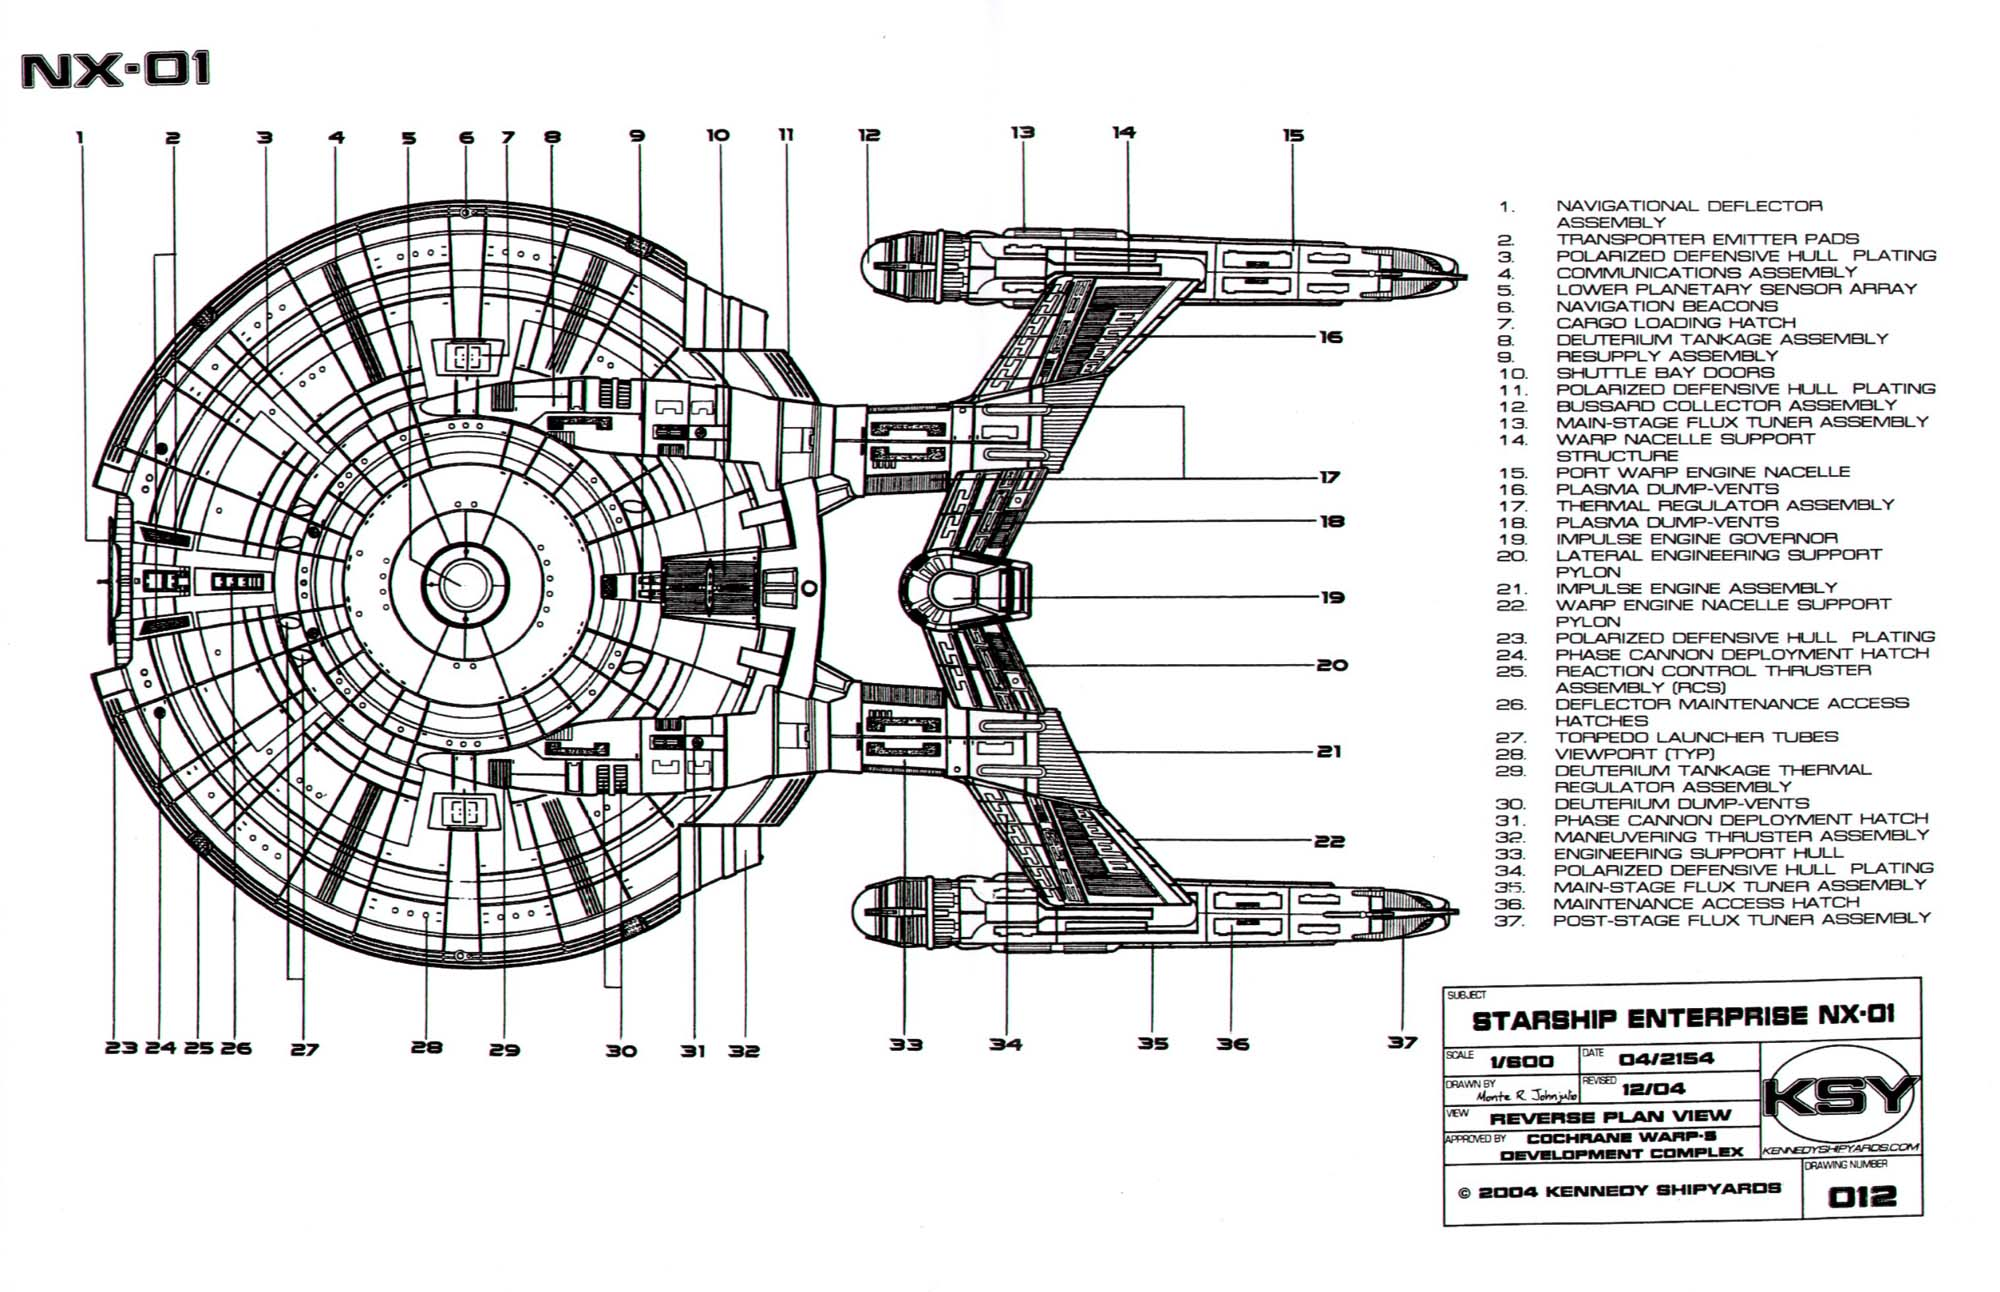 Star Trek Blueprints Starfleet Vessel Enterprise Nx 01